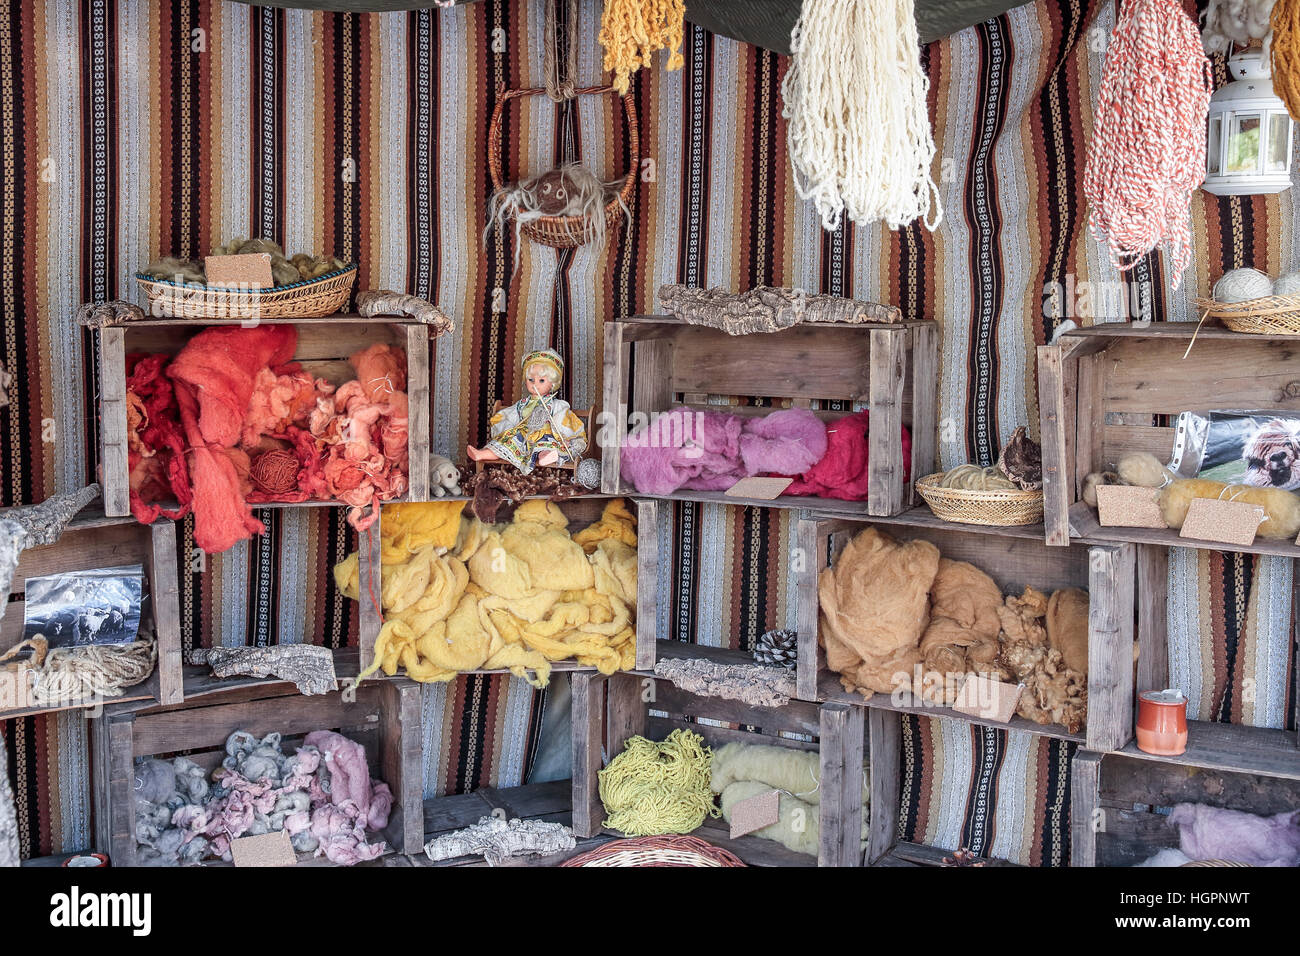 exhibition of some colored wool skeins dyed within wooden boxes - Stock Image